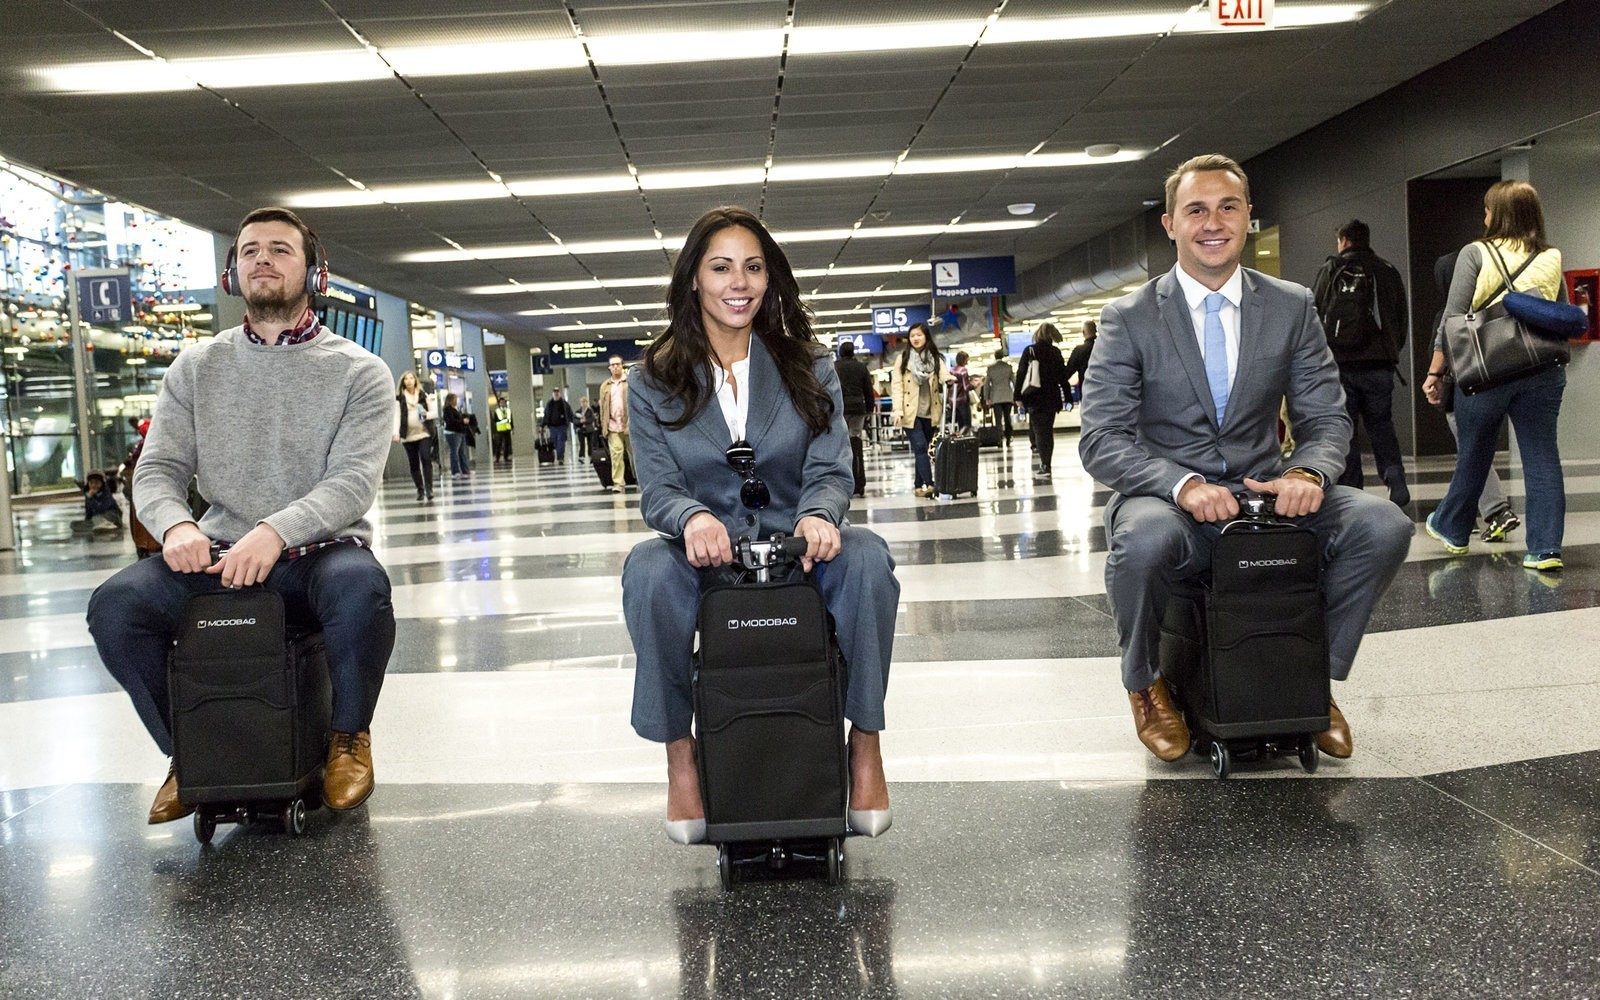 16 Smart Luggage Options That Will Transform Your Travel Experience